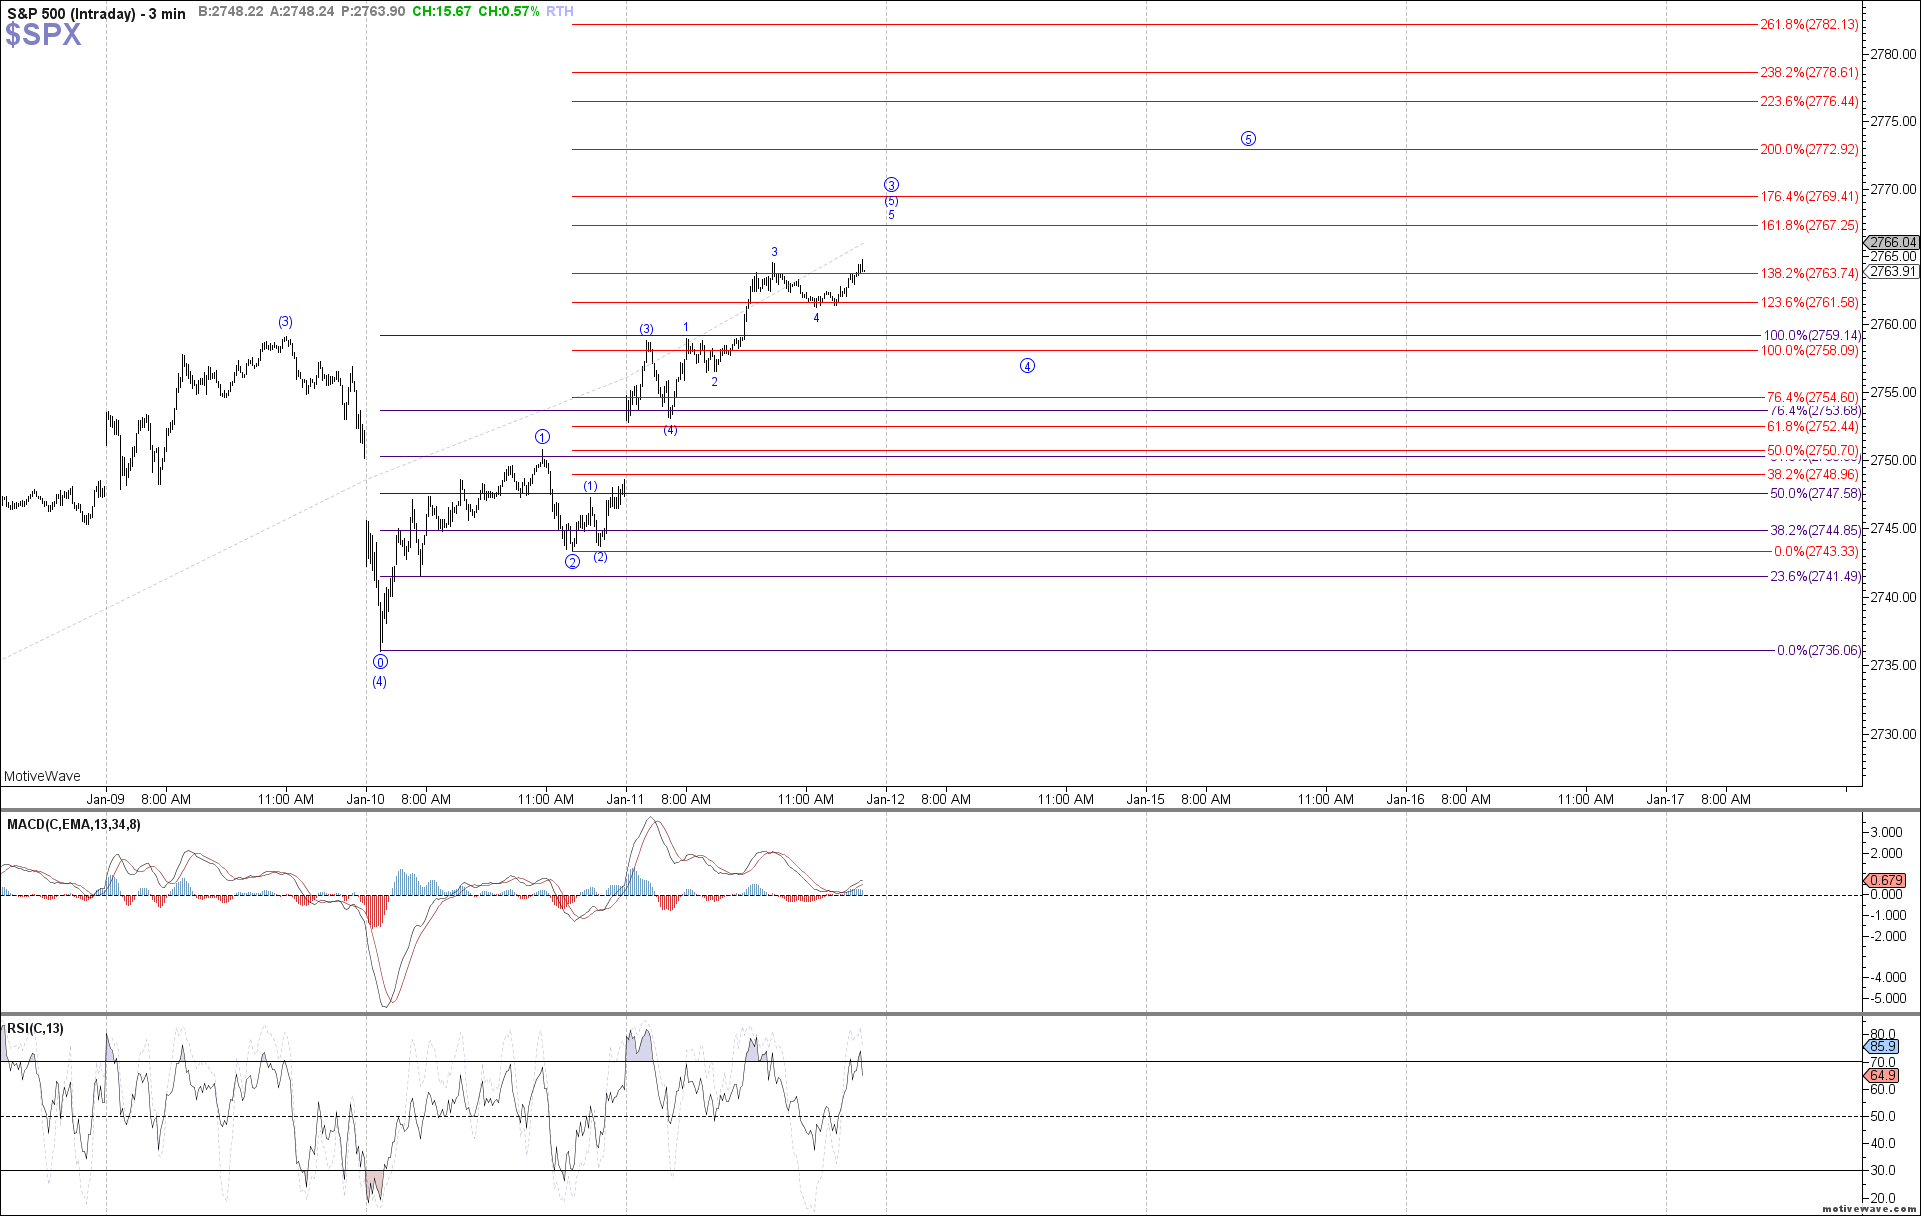 $SPX - Intraday - Jan-11 1227 PM (3 min)